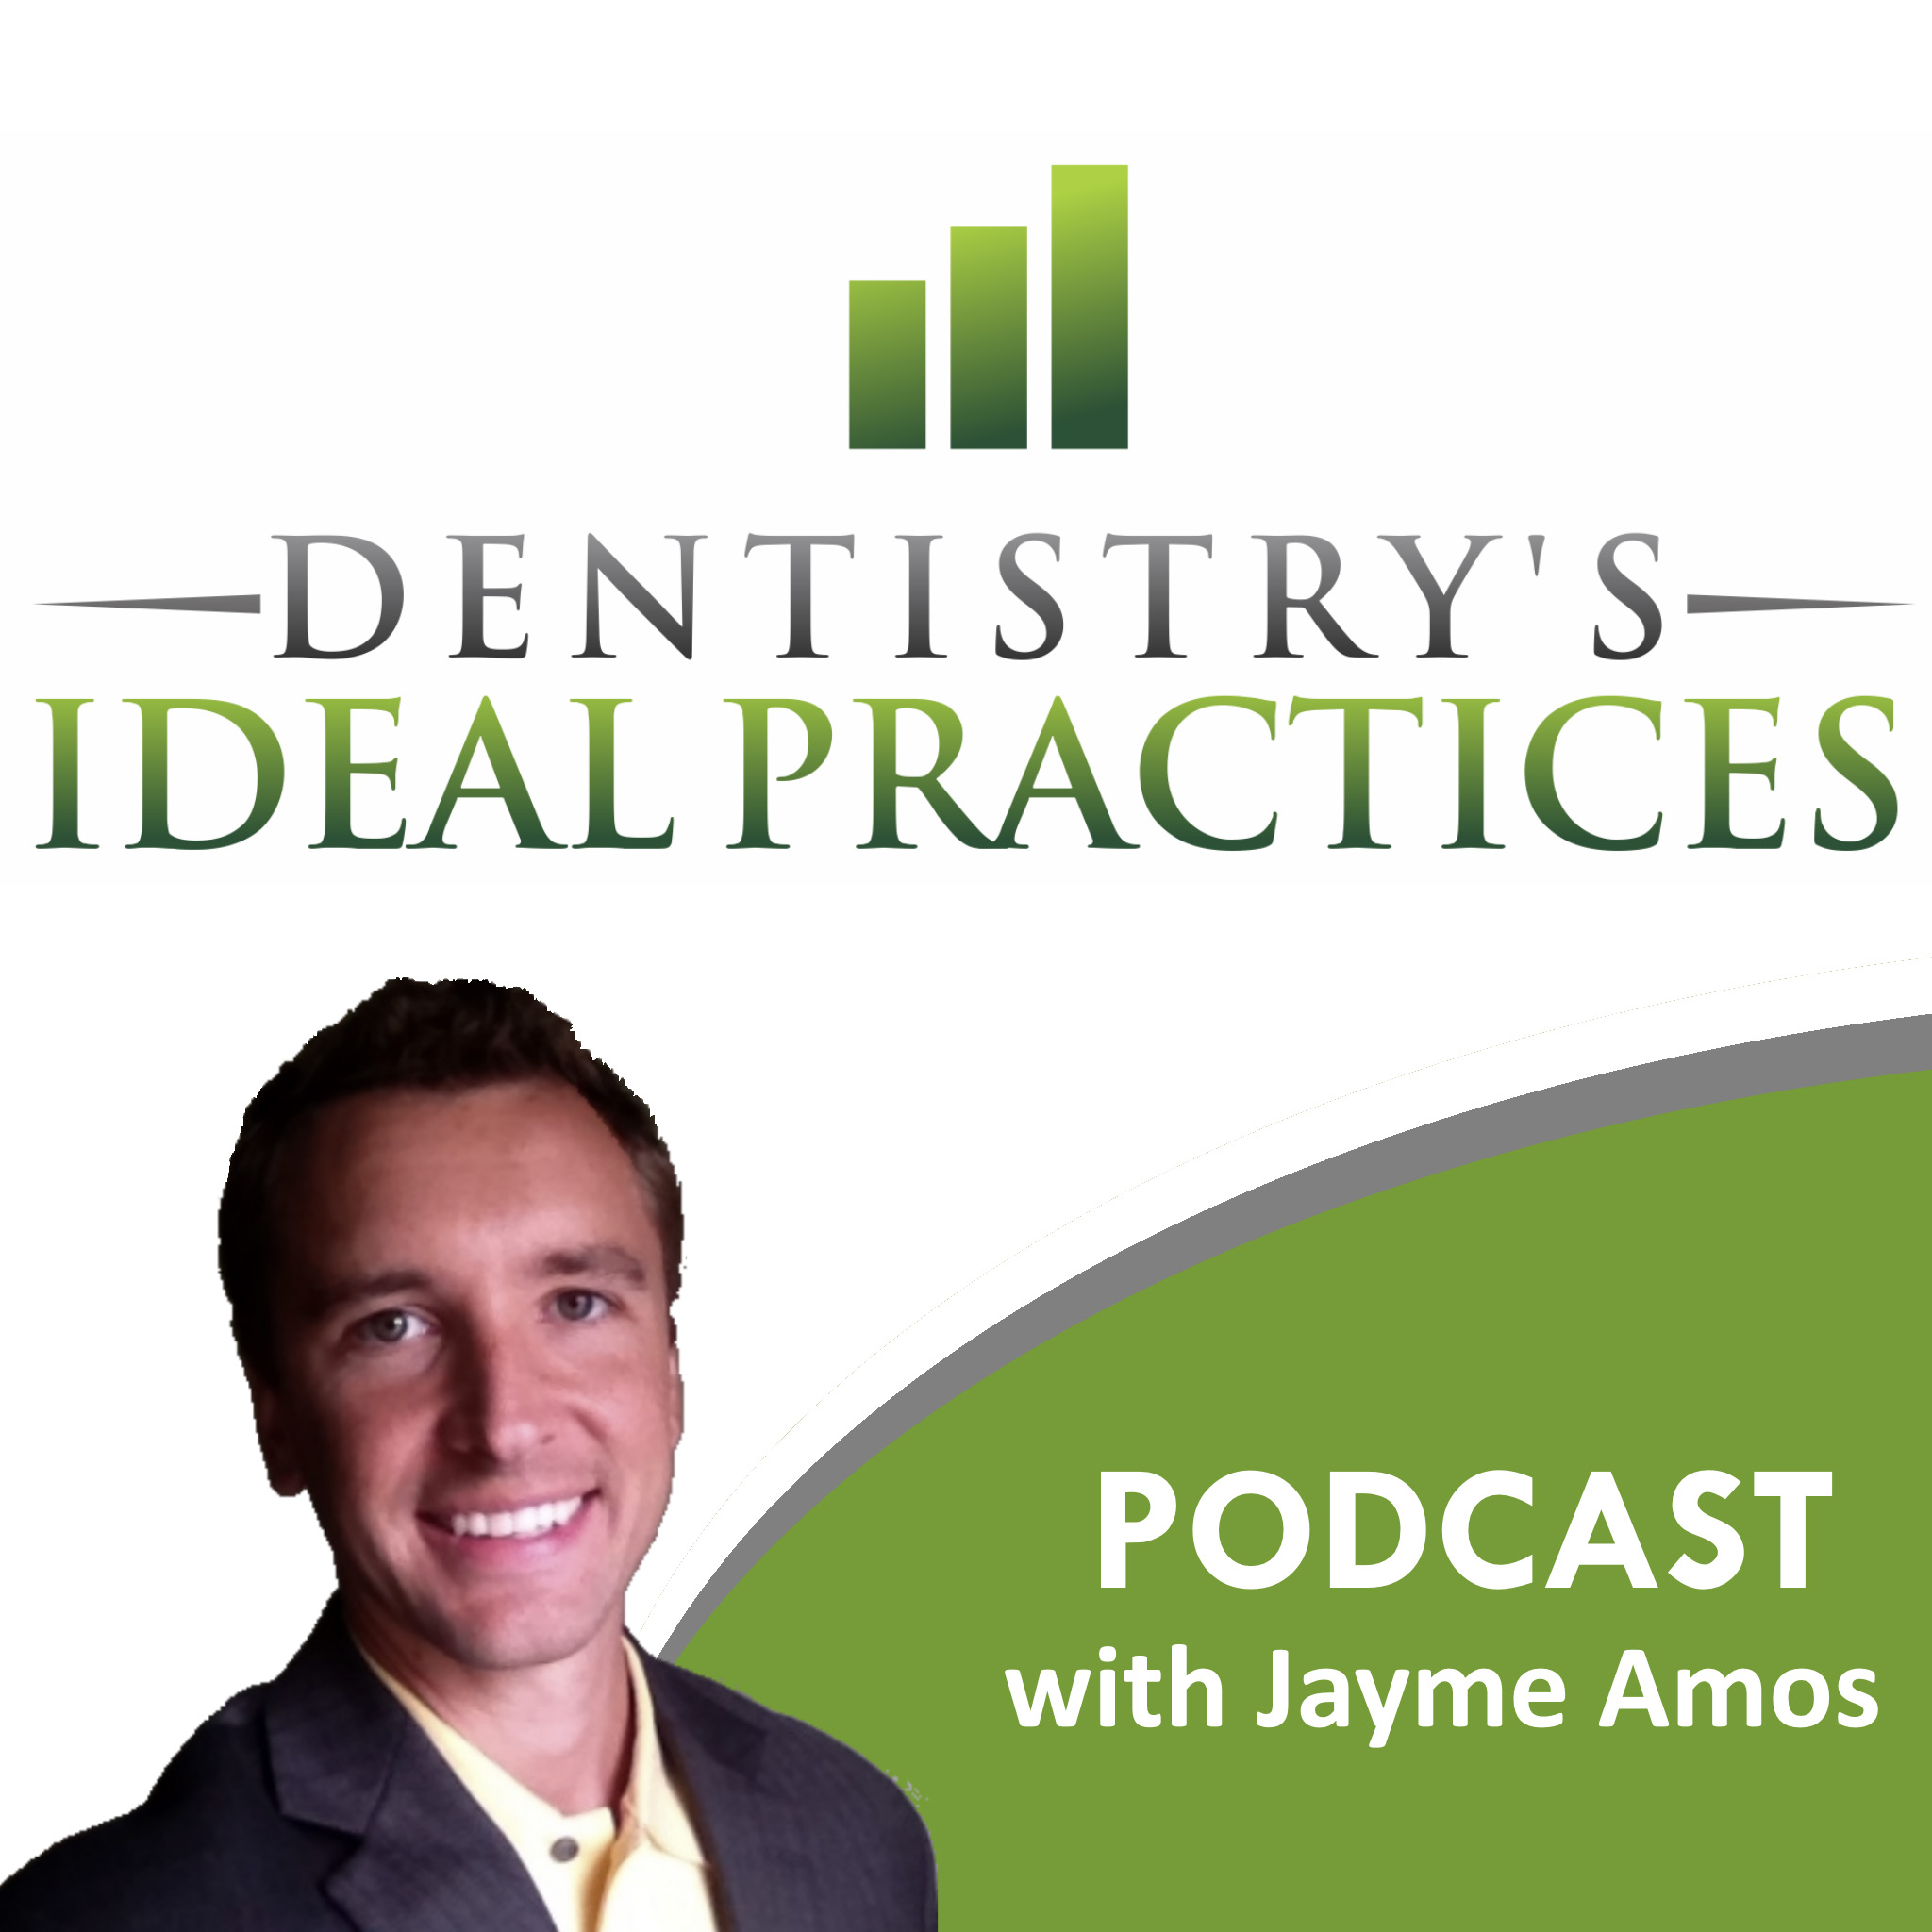 Dentistry's Ideal Practices Podcast   Dental Practice Management   Exclusively for Dentists